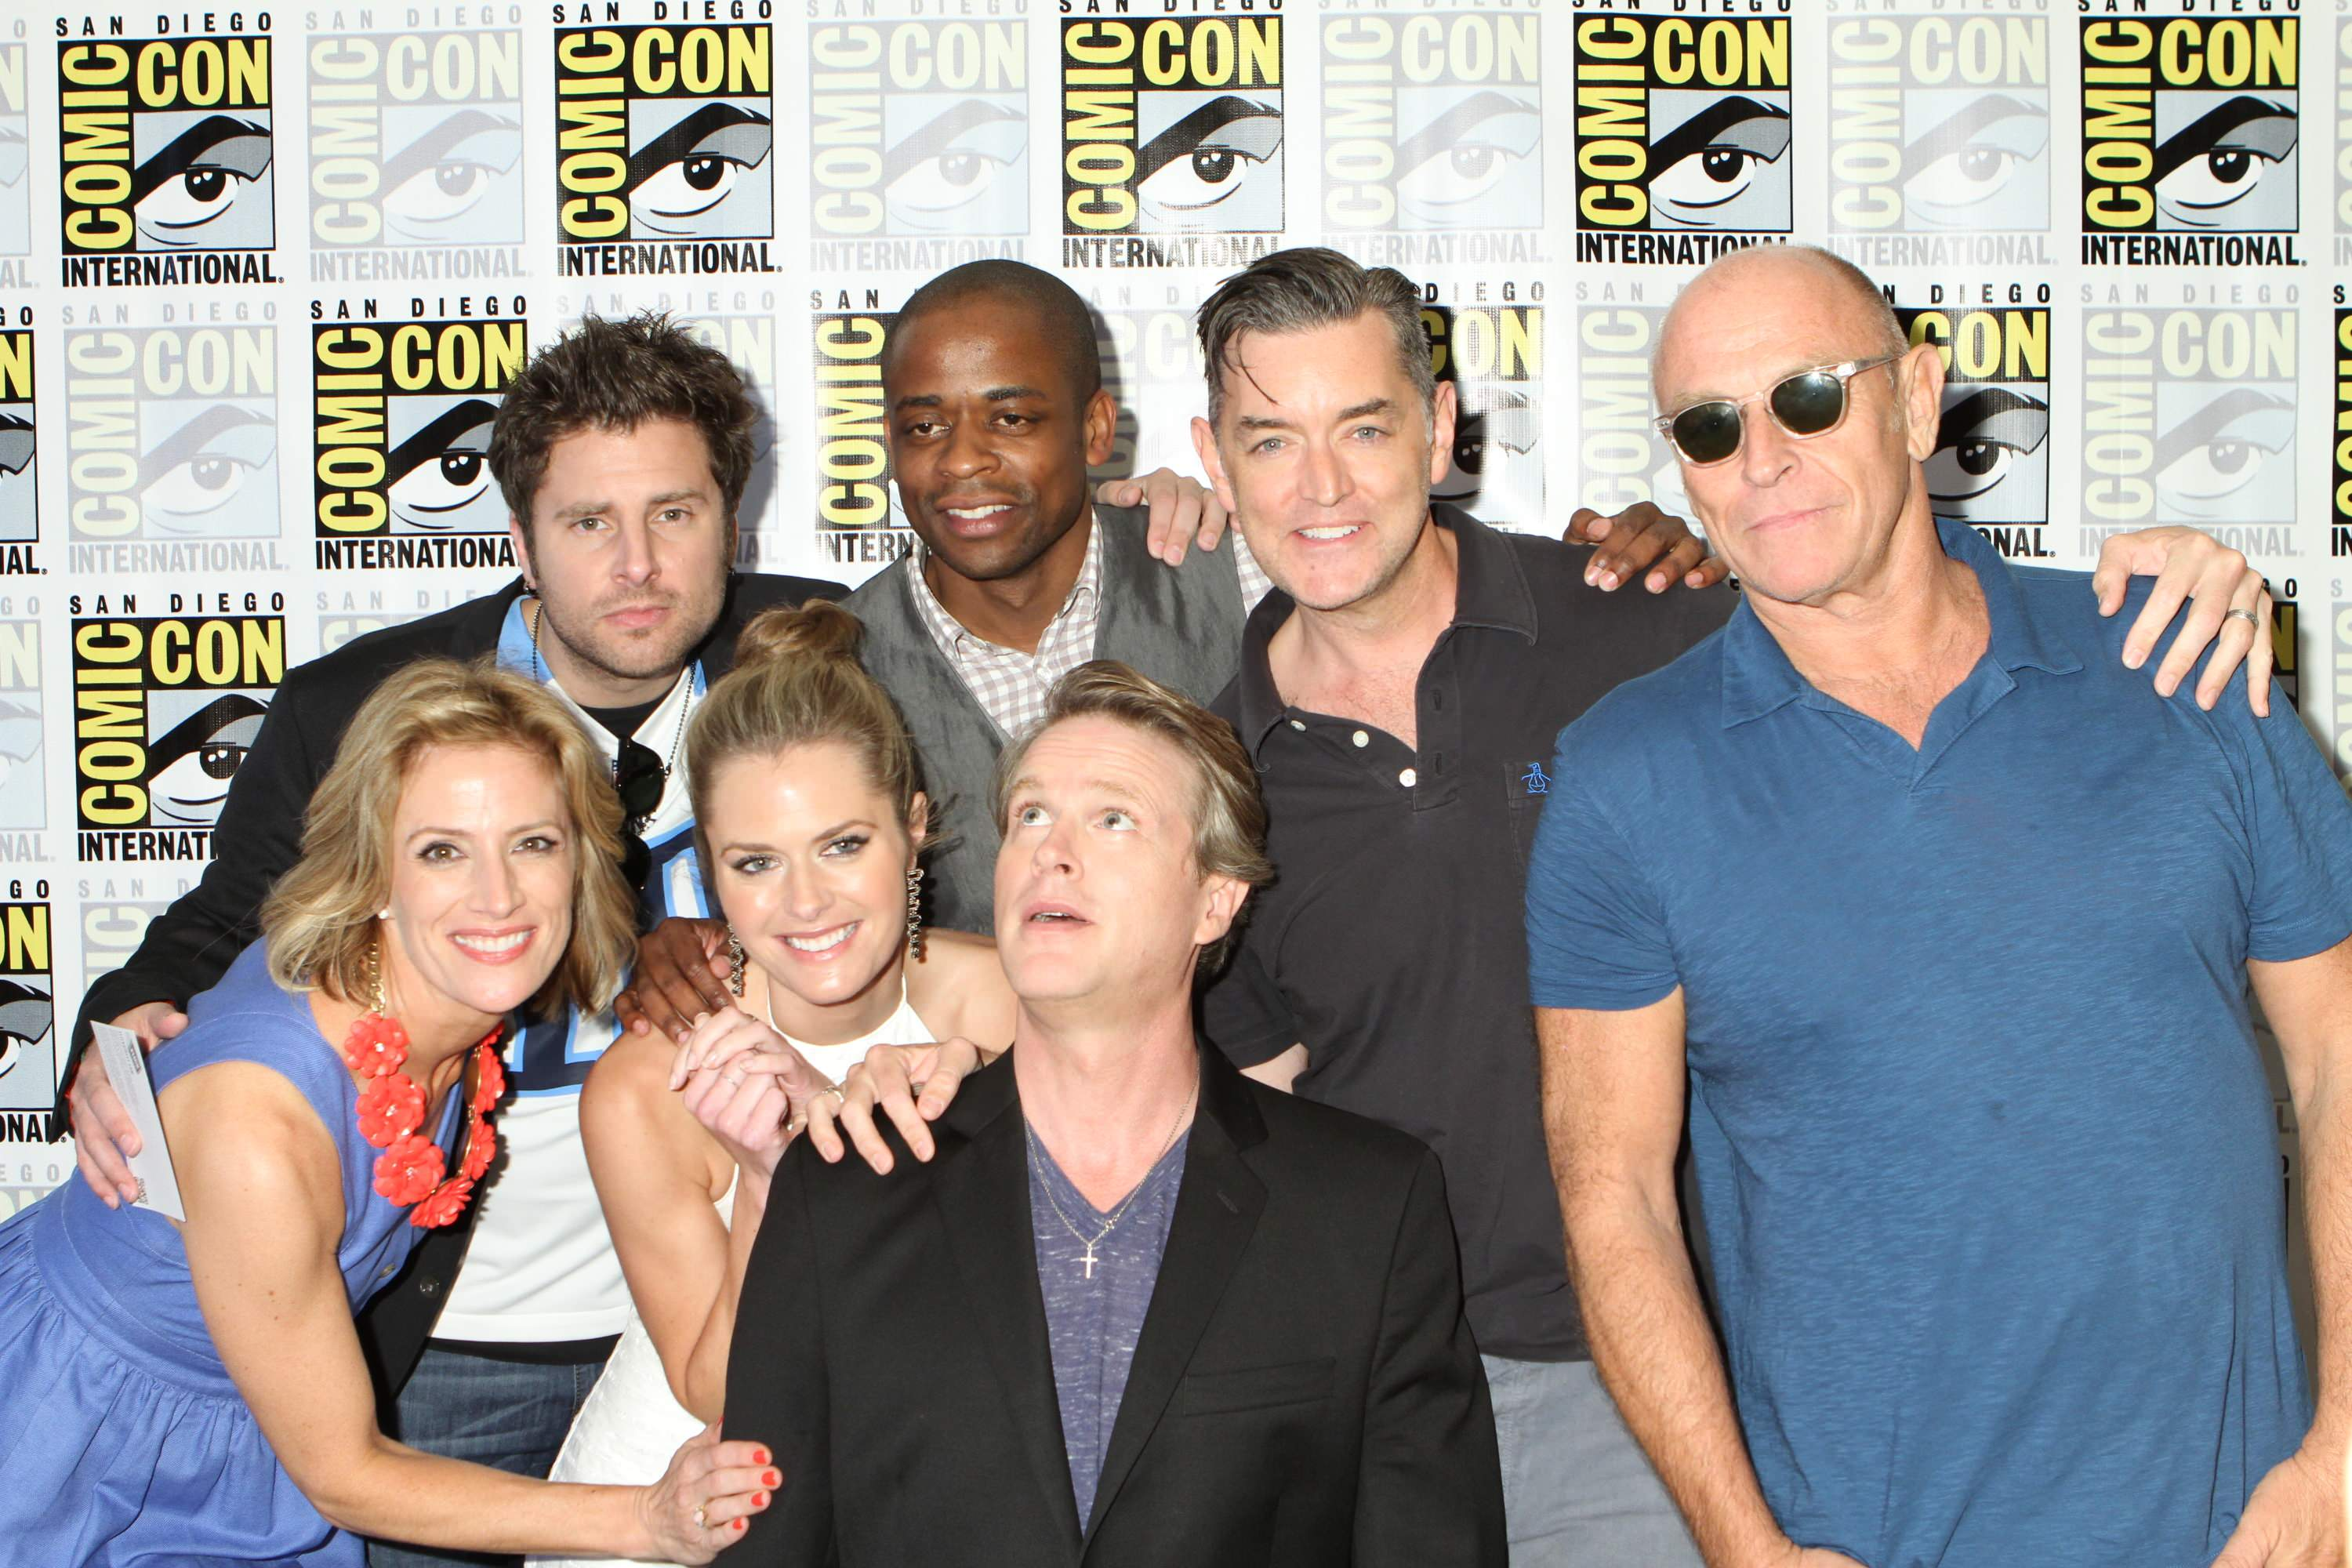 Psych cast dating